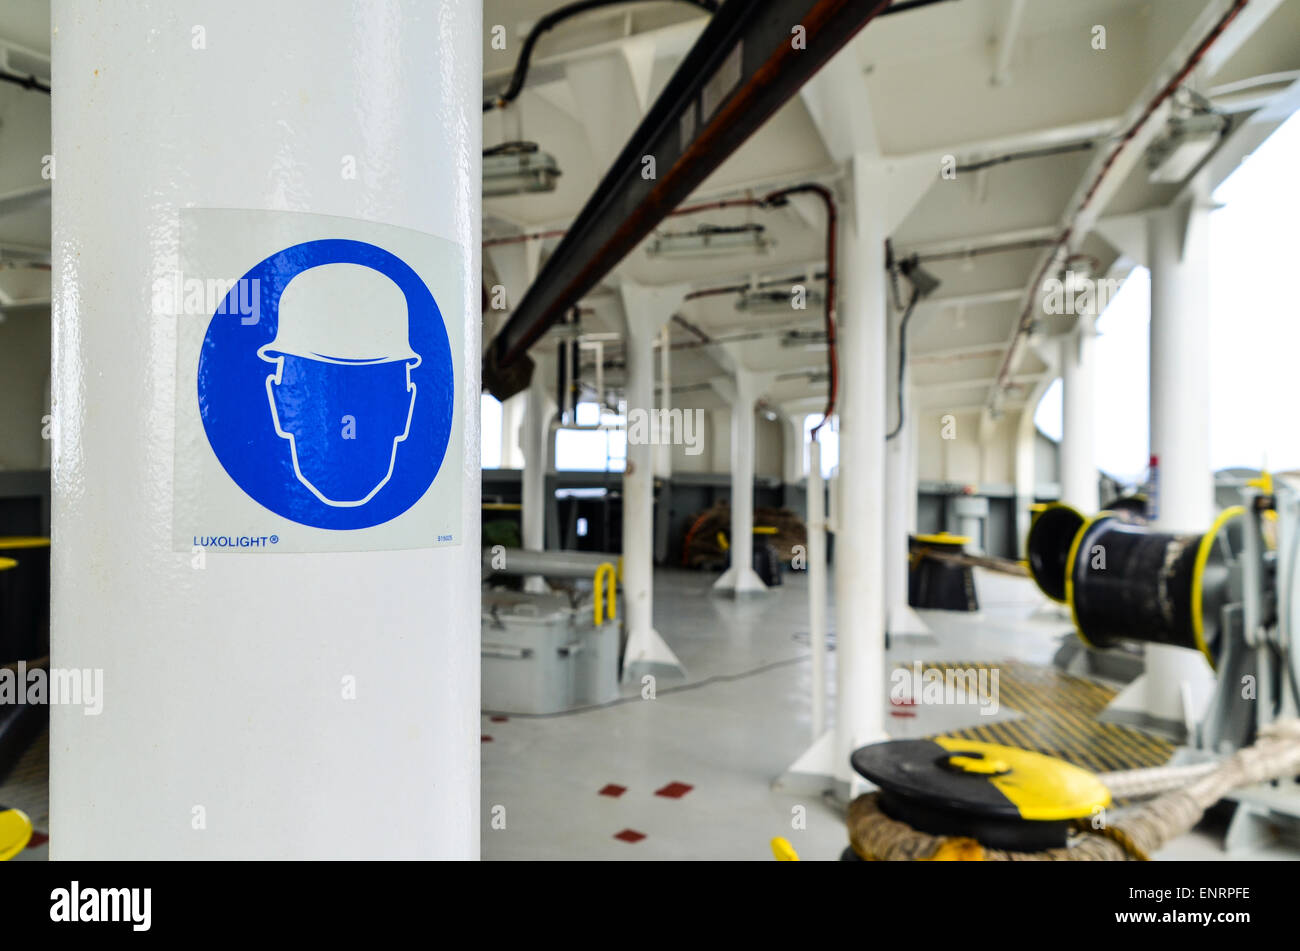 Bow of a cargo ship and safety sign for hard hat - Stock Image